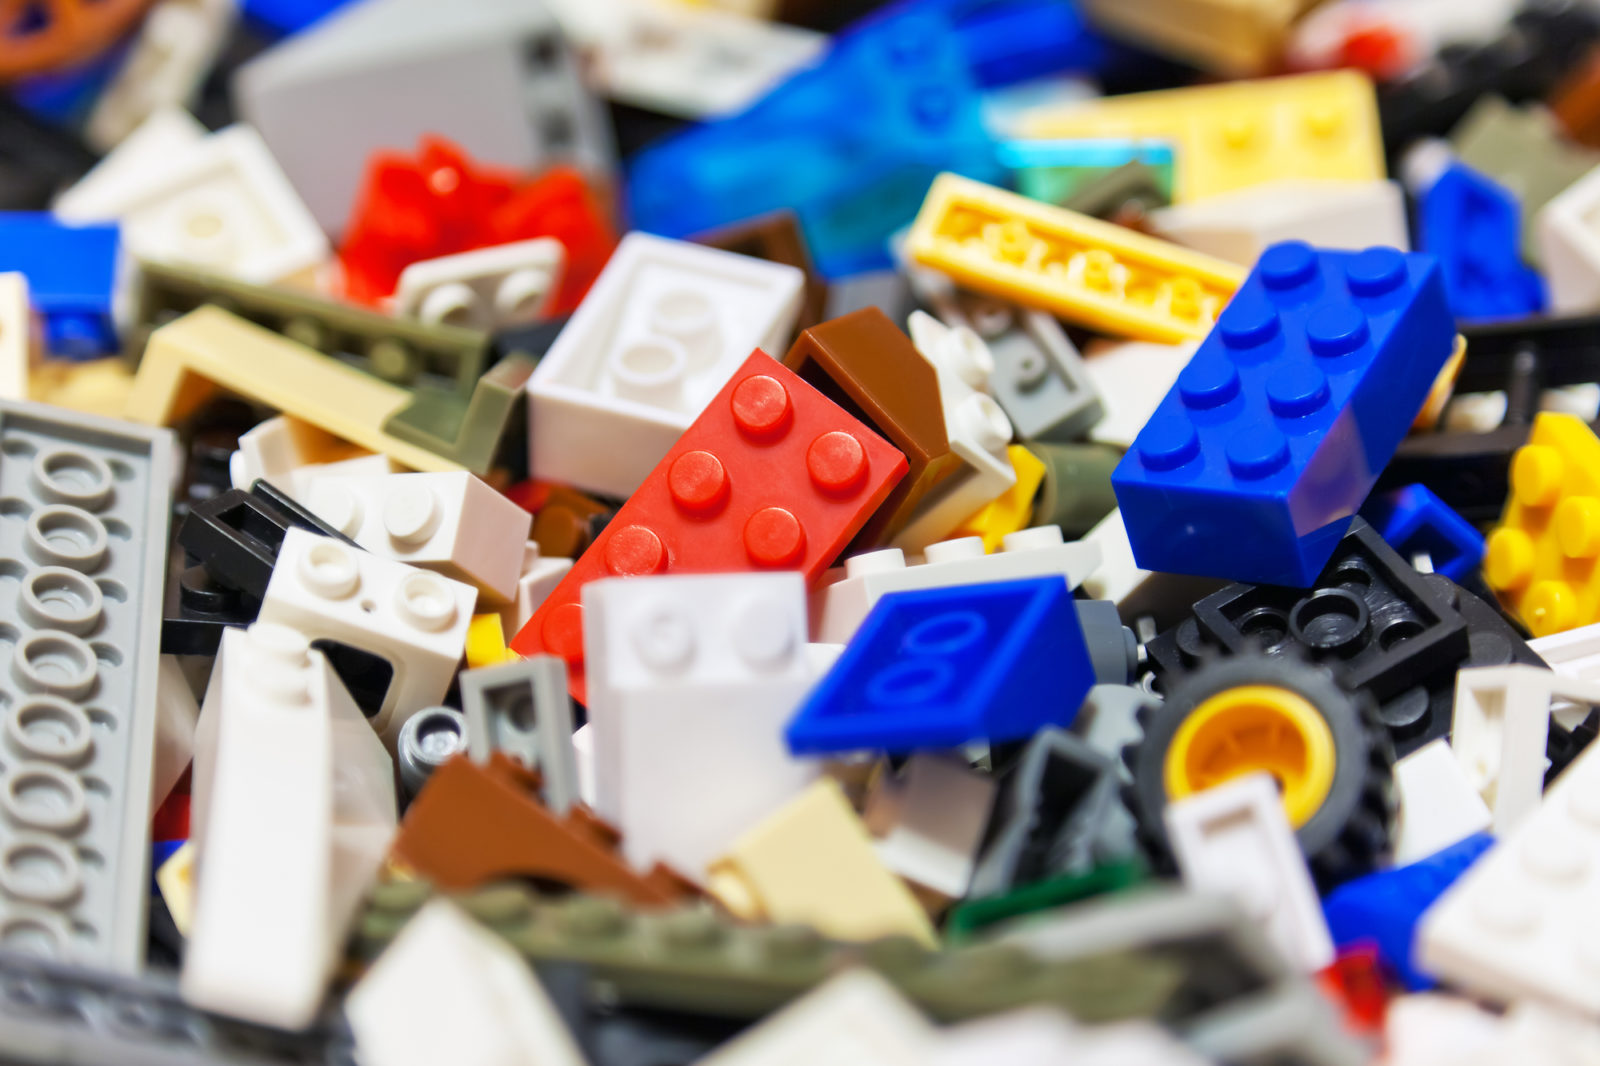 Creative Event Themes: Lego Extravaganza